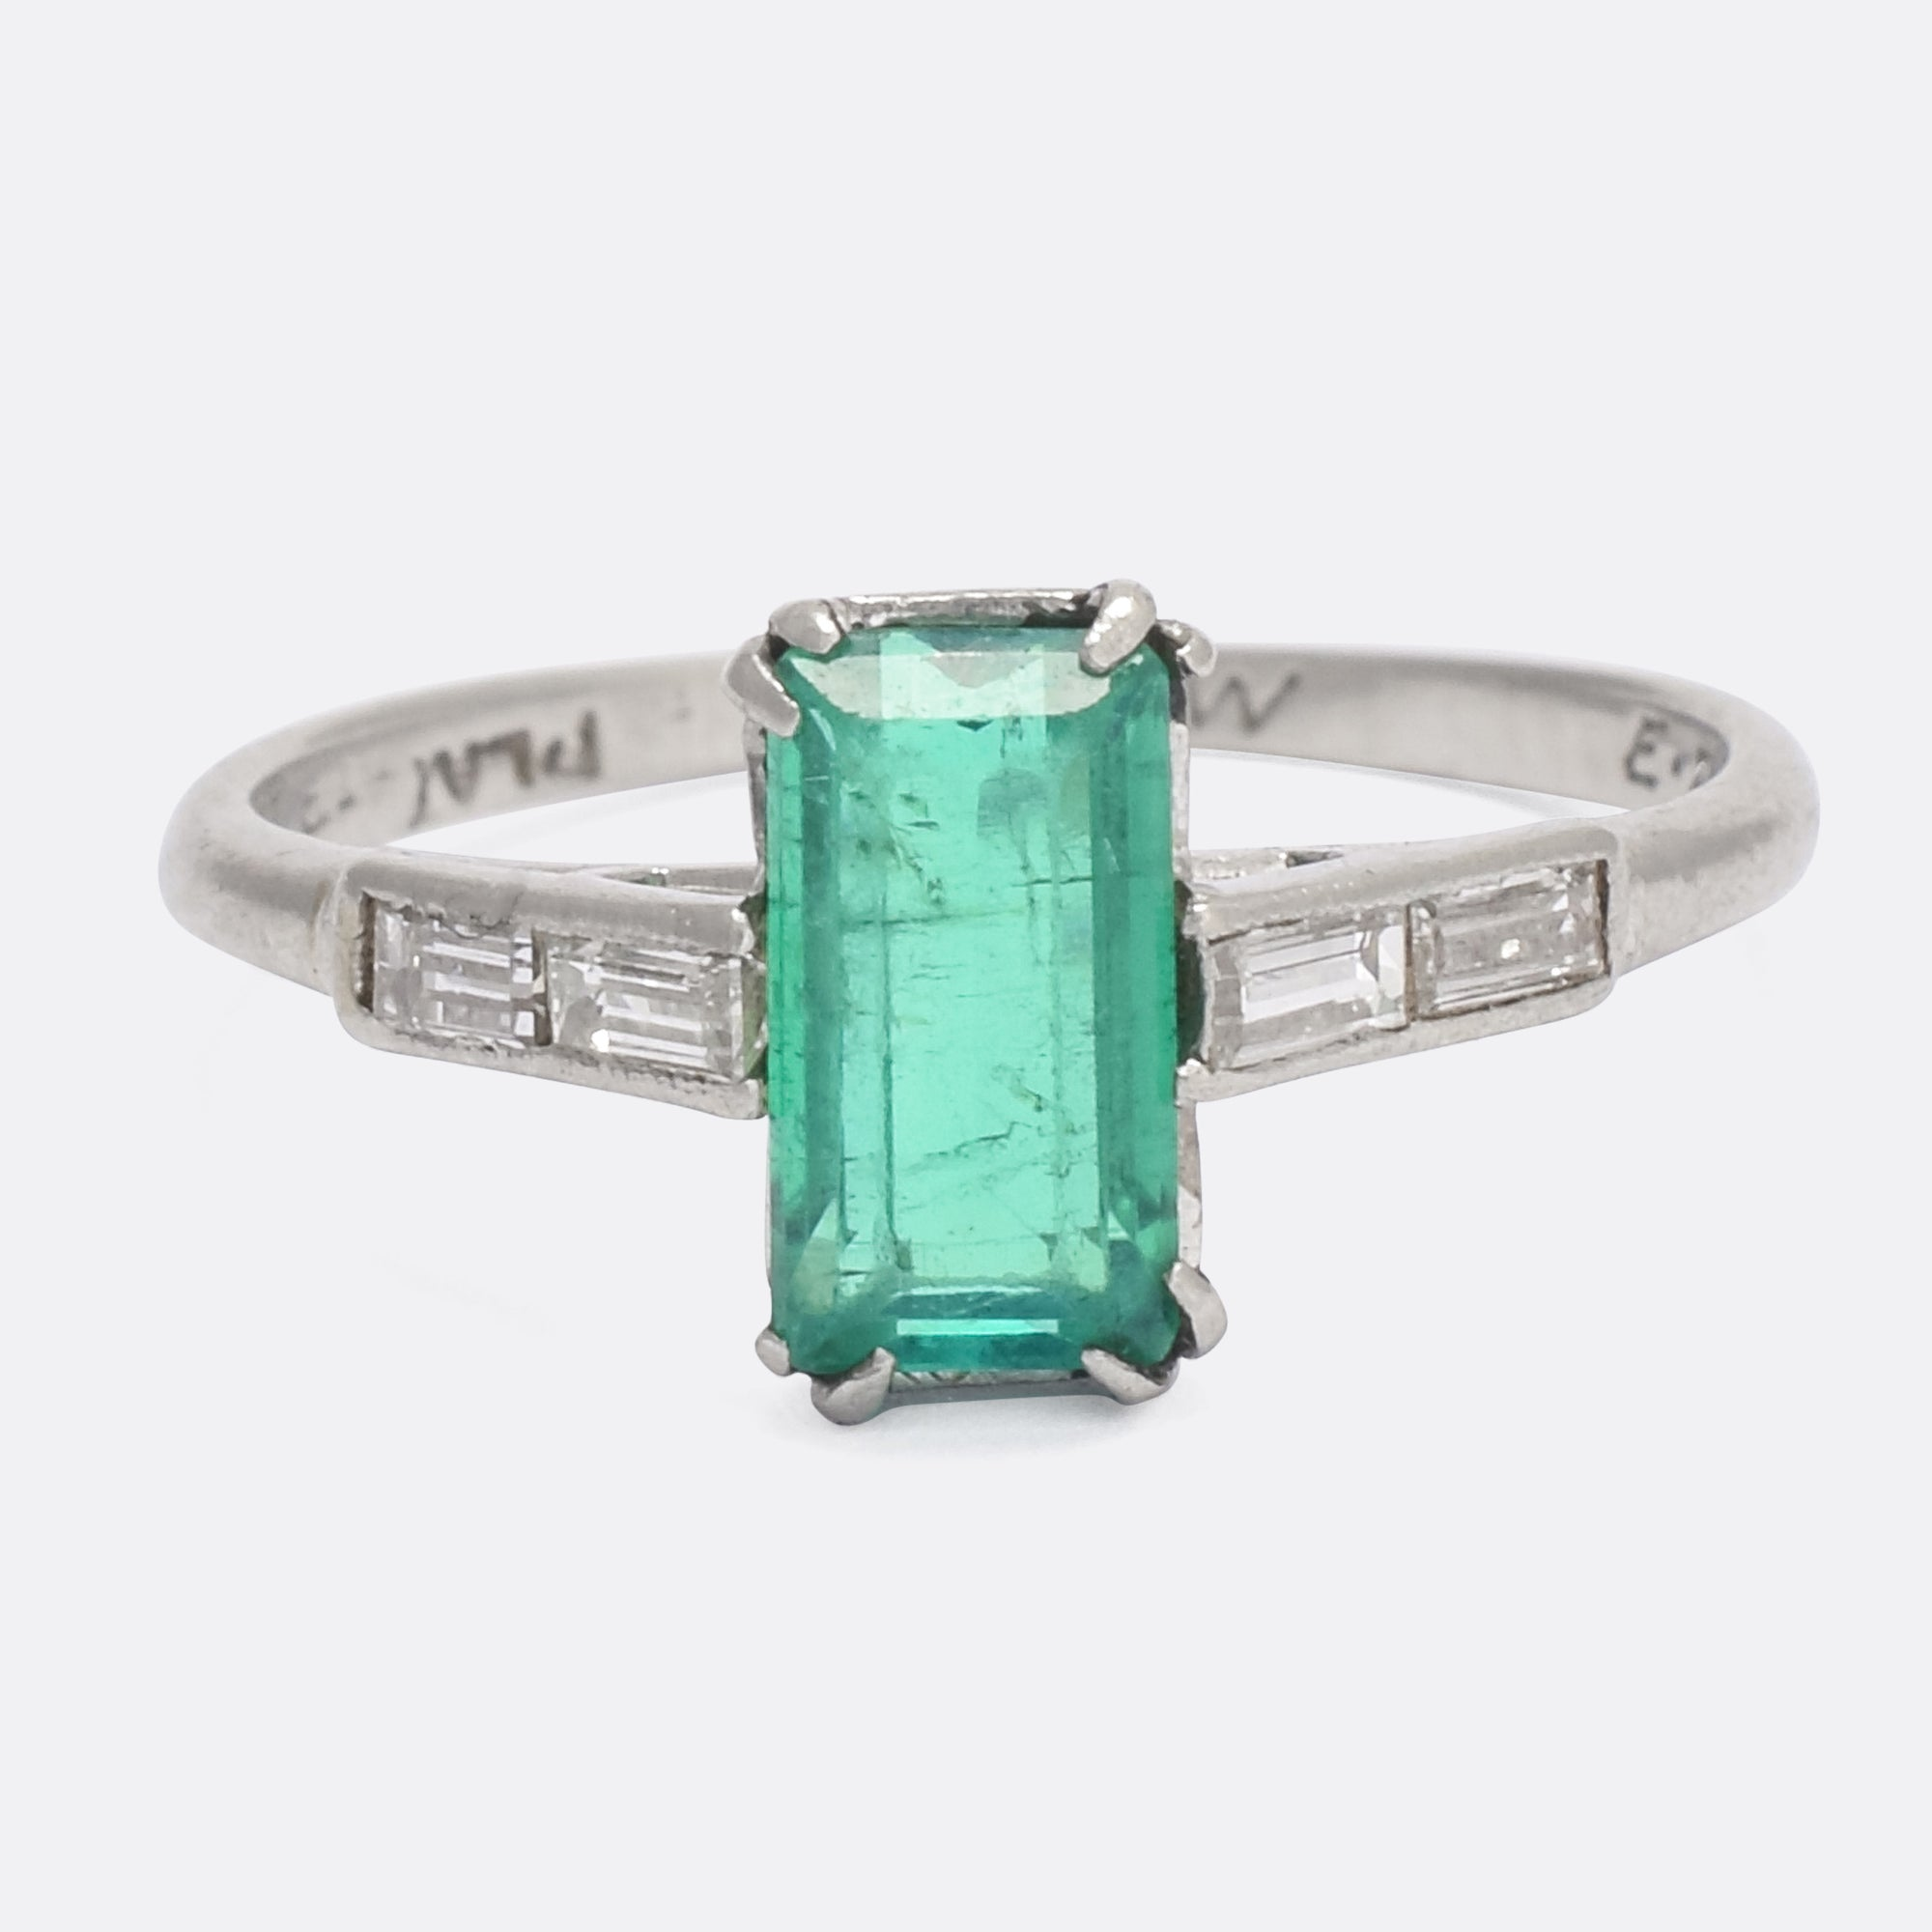 ring solitaire cut en winston diamond emerald engagement masked harry